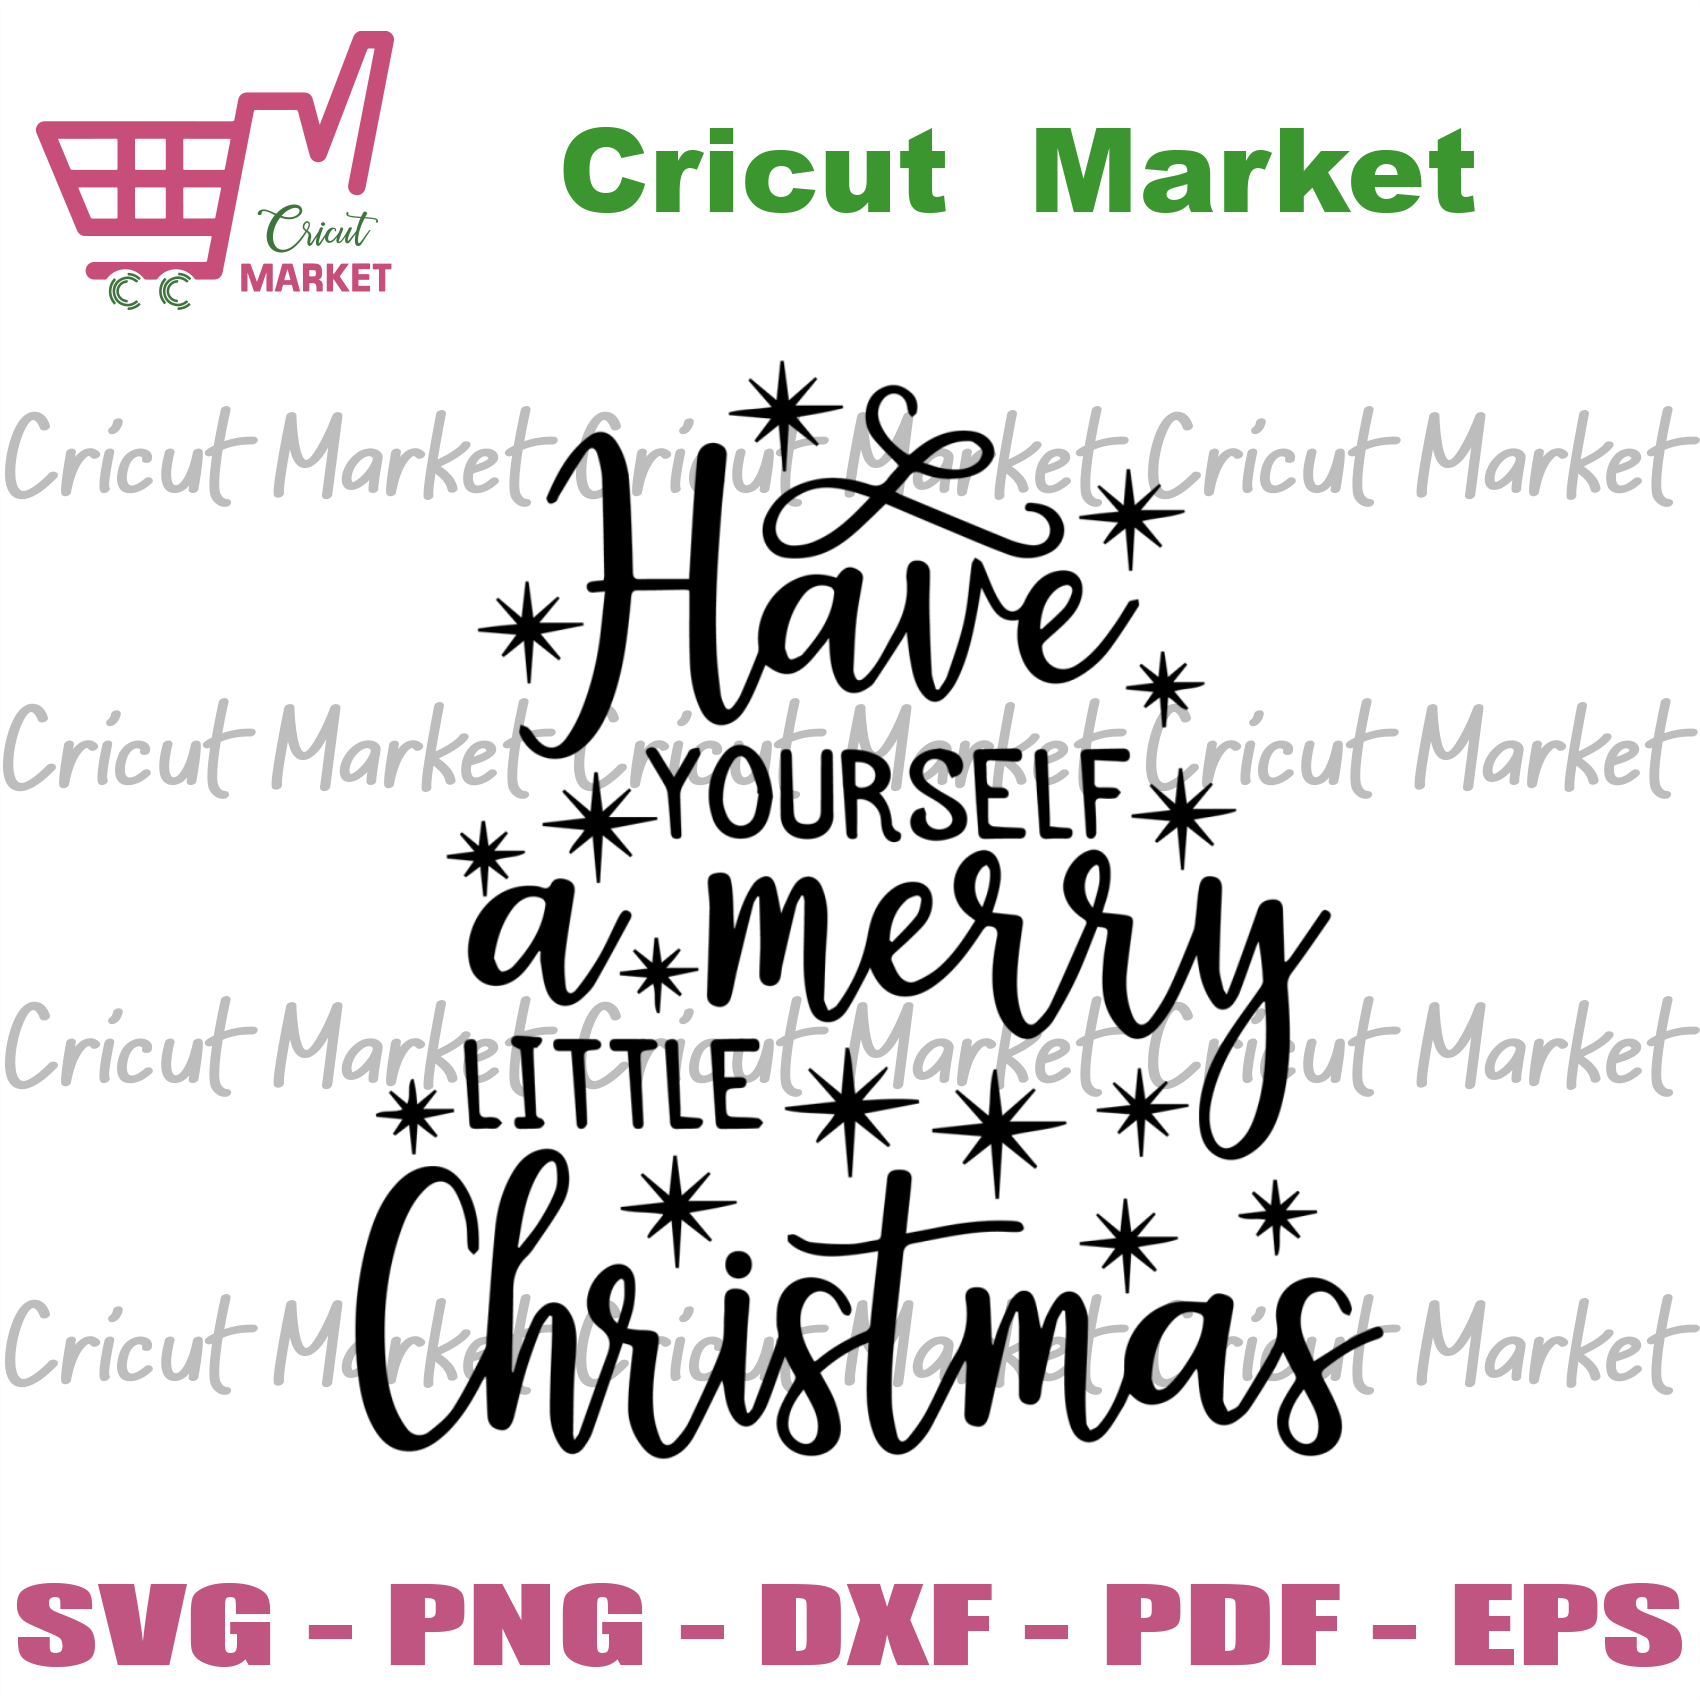 Have Yourself A Merry Little Christmas, Christmas Svg, Christmas Gifts, Merry Christmas, Christmas Holiday, Christmas Party, Funny Christmas, Xmas Gift, Christmas Gift Ideas, Merry Christmas